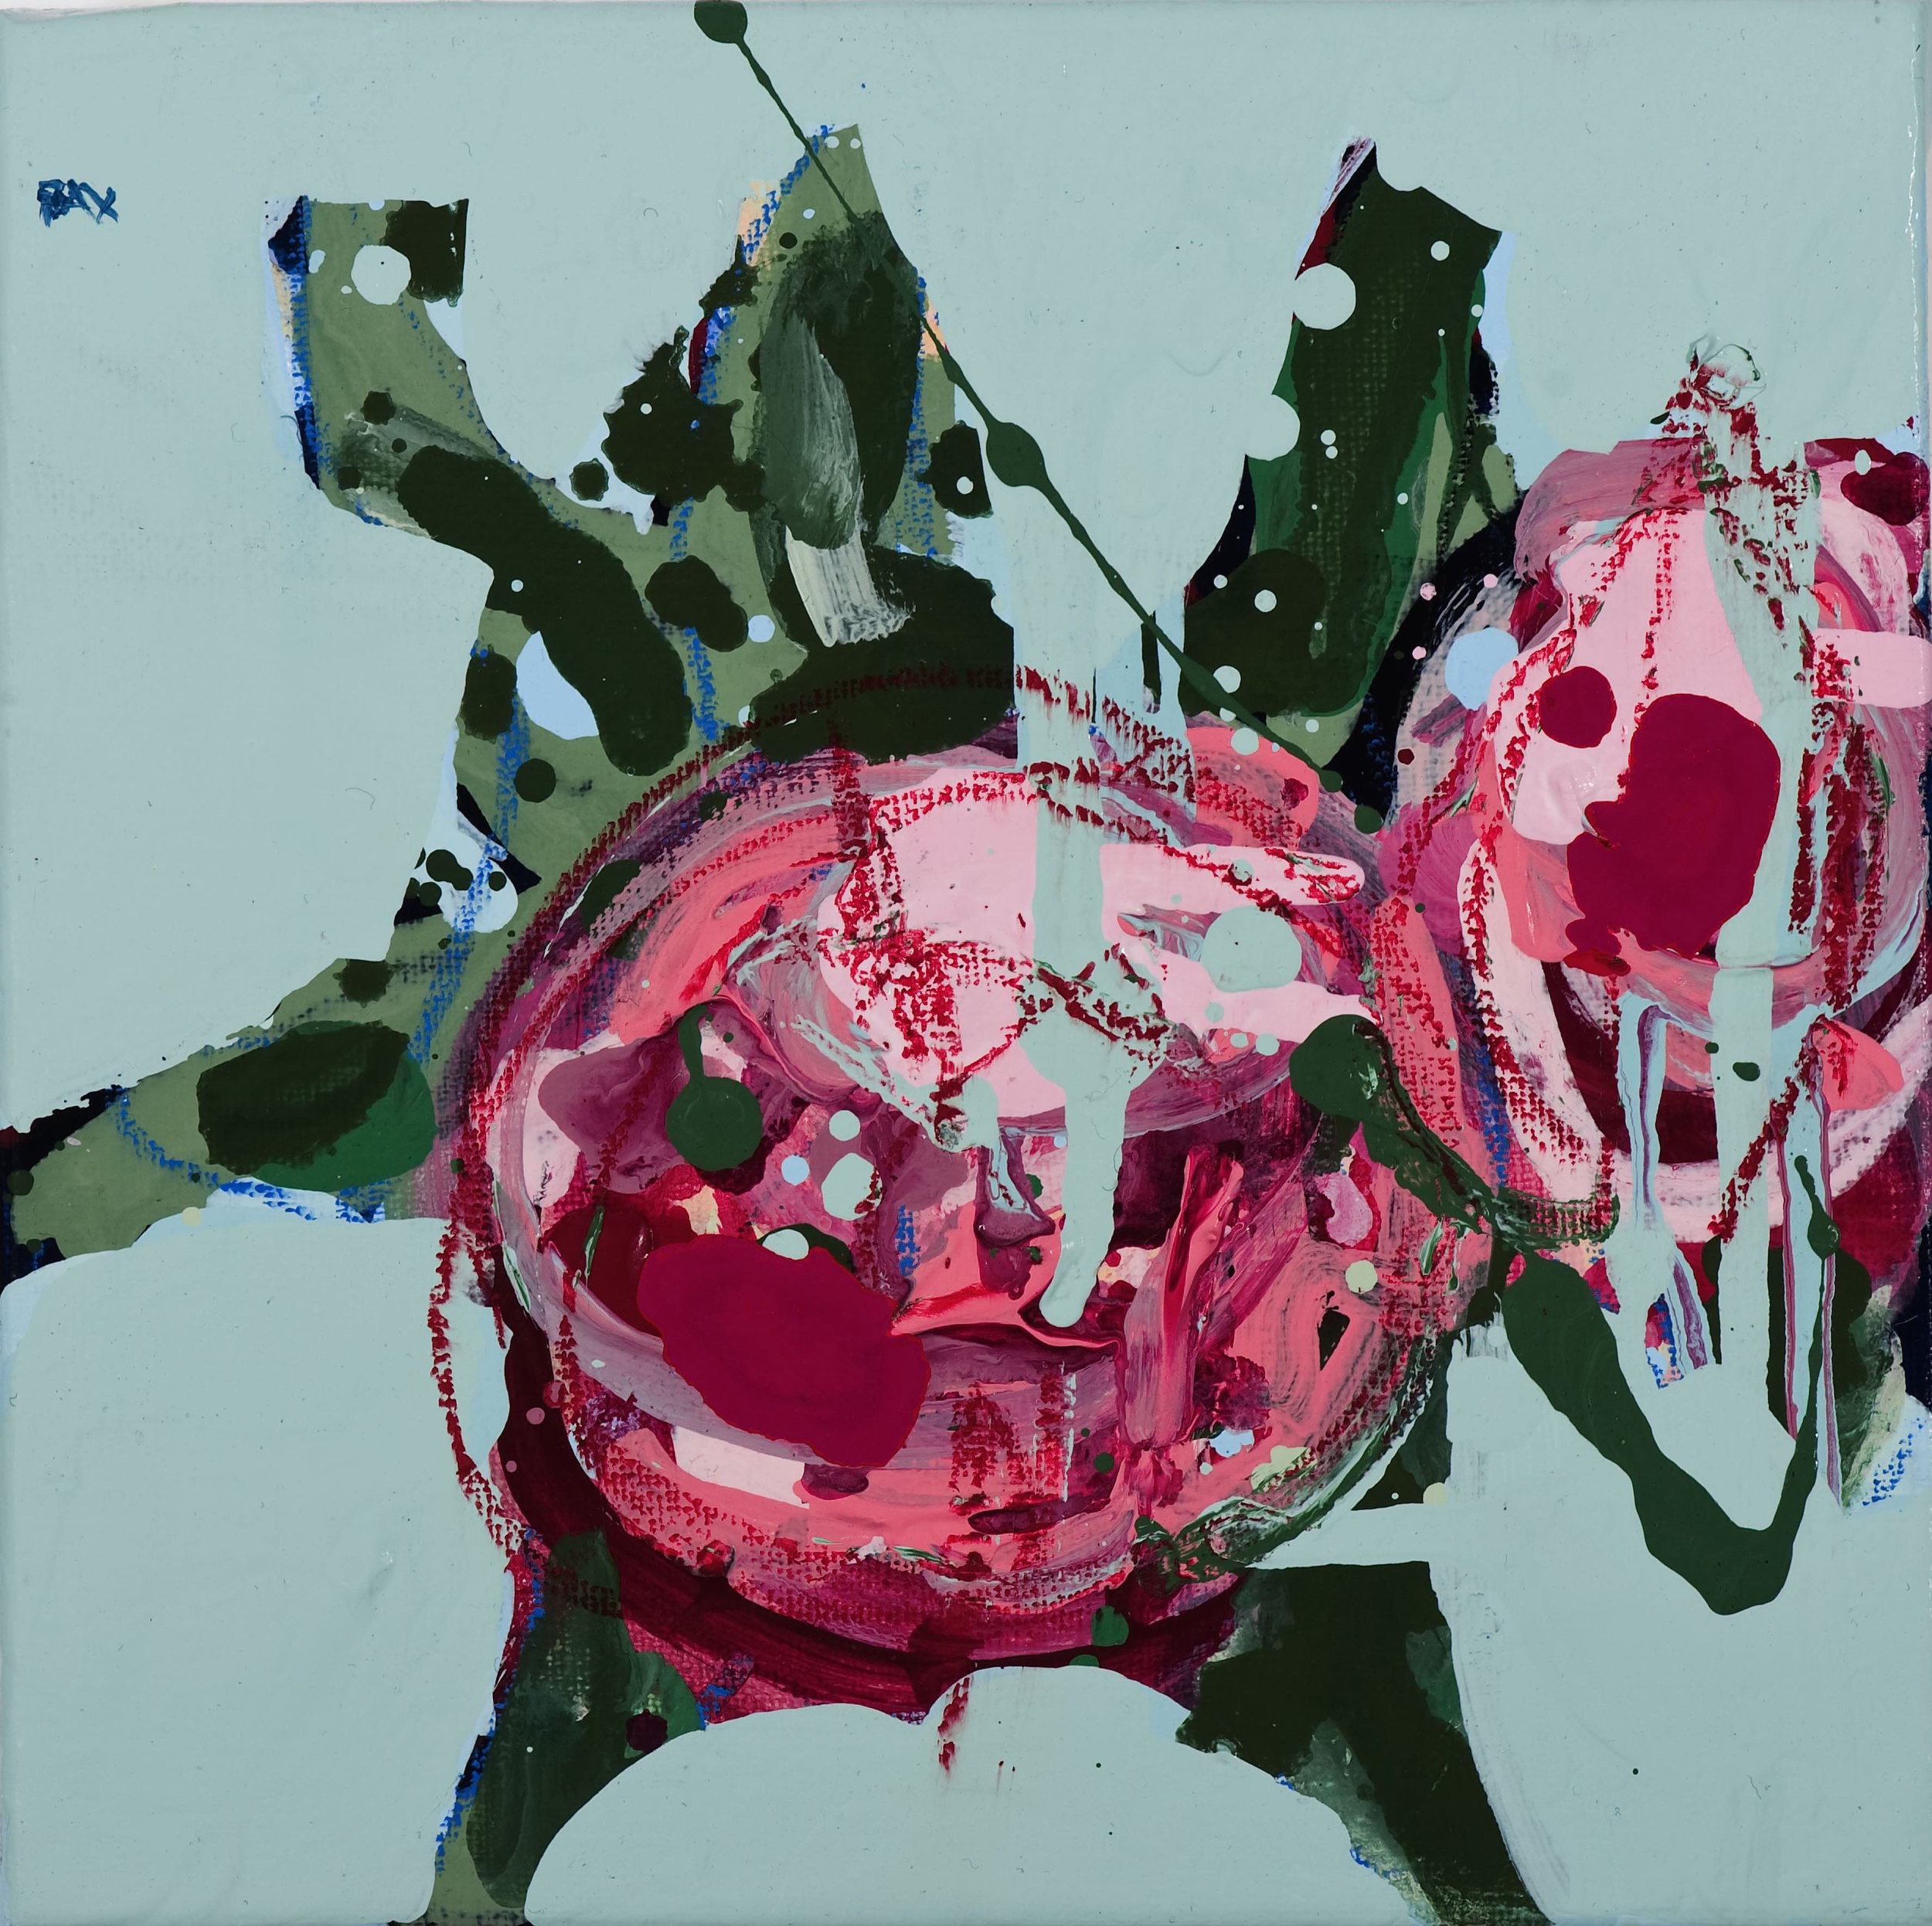 Matthew Bax English Rose - Sky Blue 2012 20 x 20 cm Acrylic, wax crayon on linen